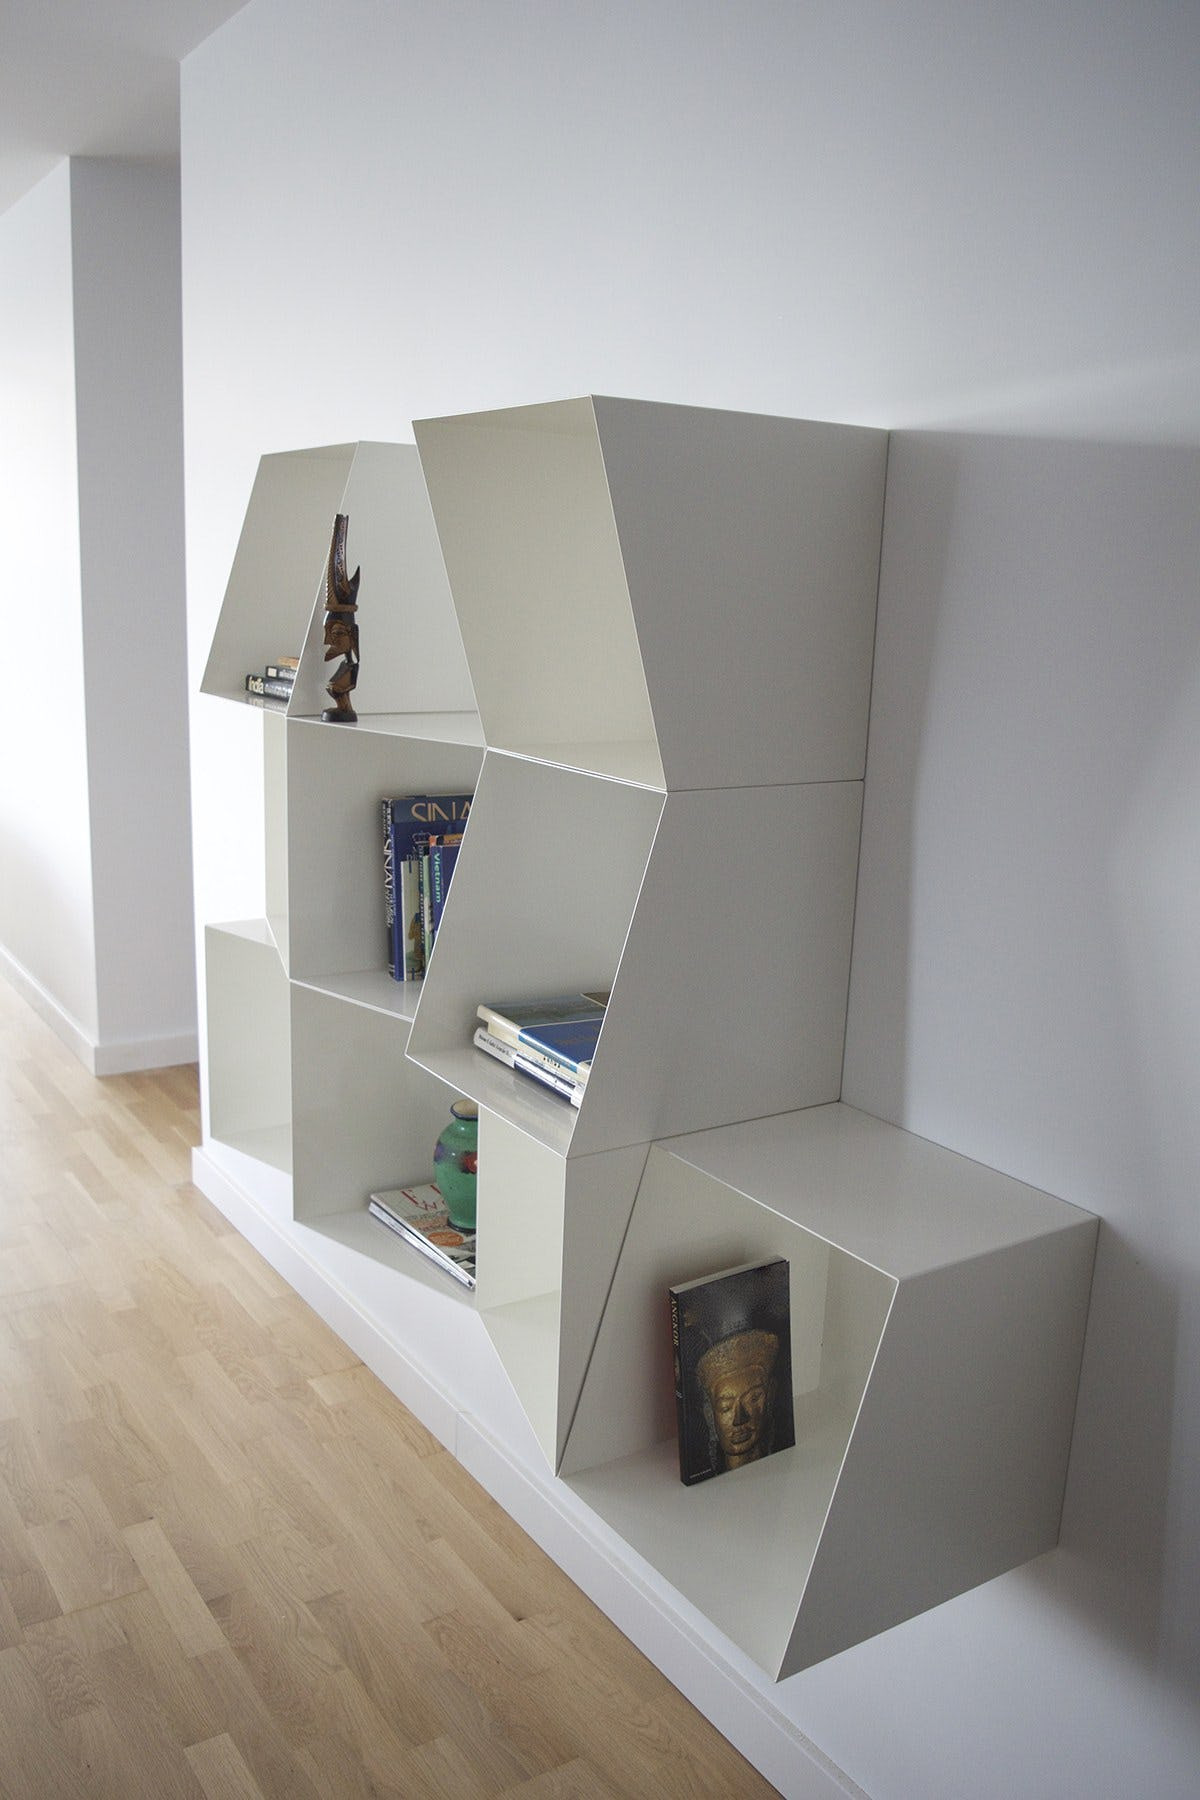 totem hardwood flooring reviews of shop totem angular bookcase cubes on crowdyhouse within totem angular bookcase cubes designed by design by nico made in united kingdom uk